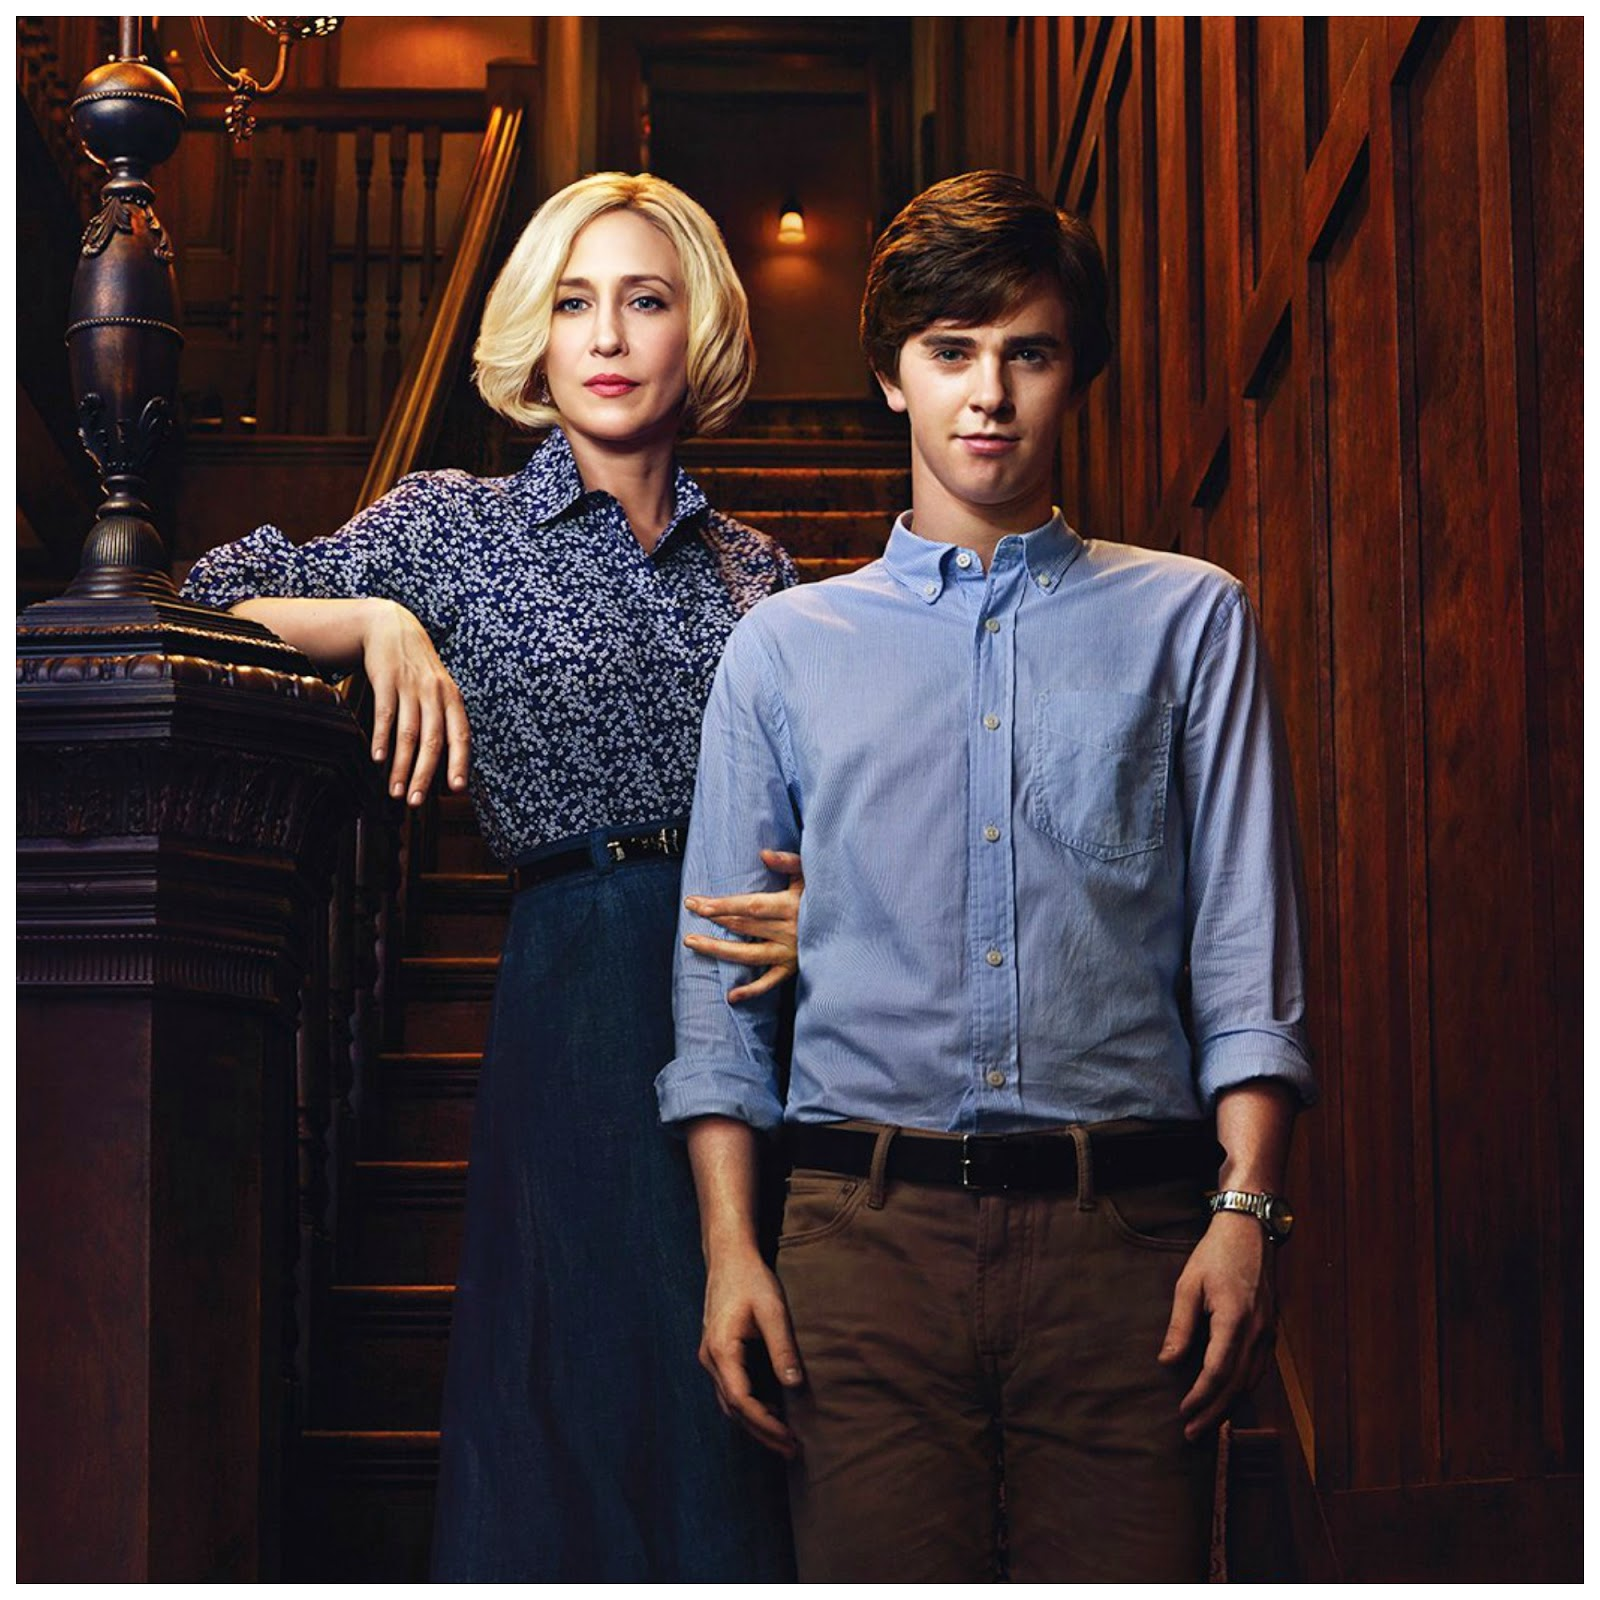 Bates Motel Season 2 Review